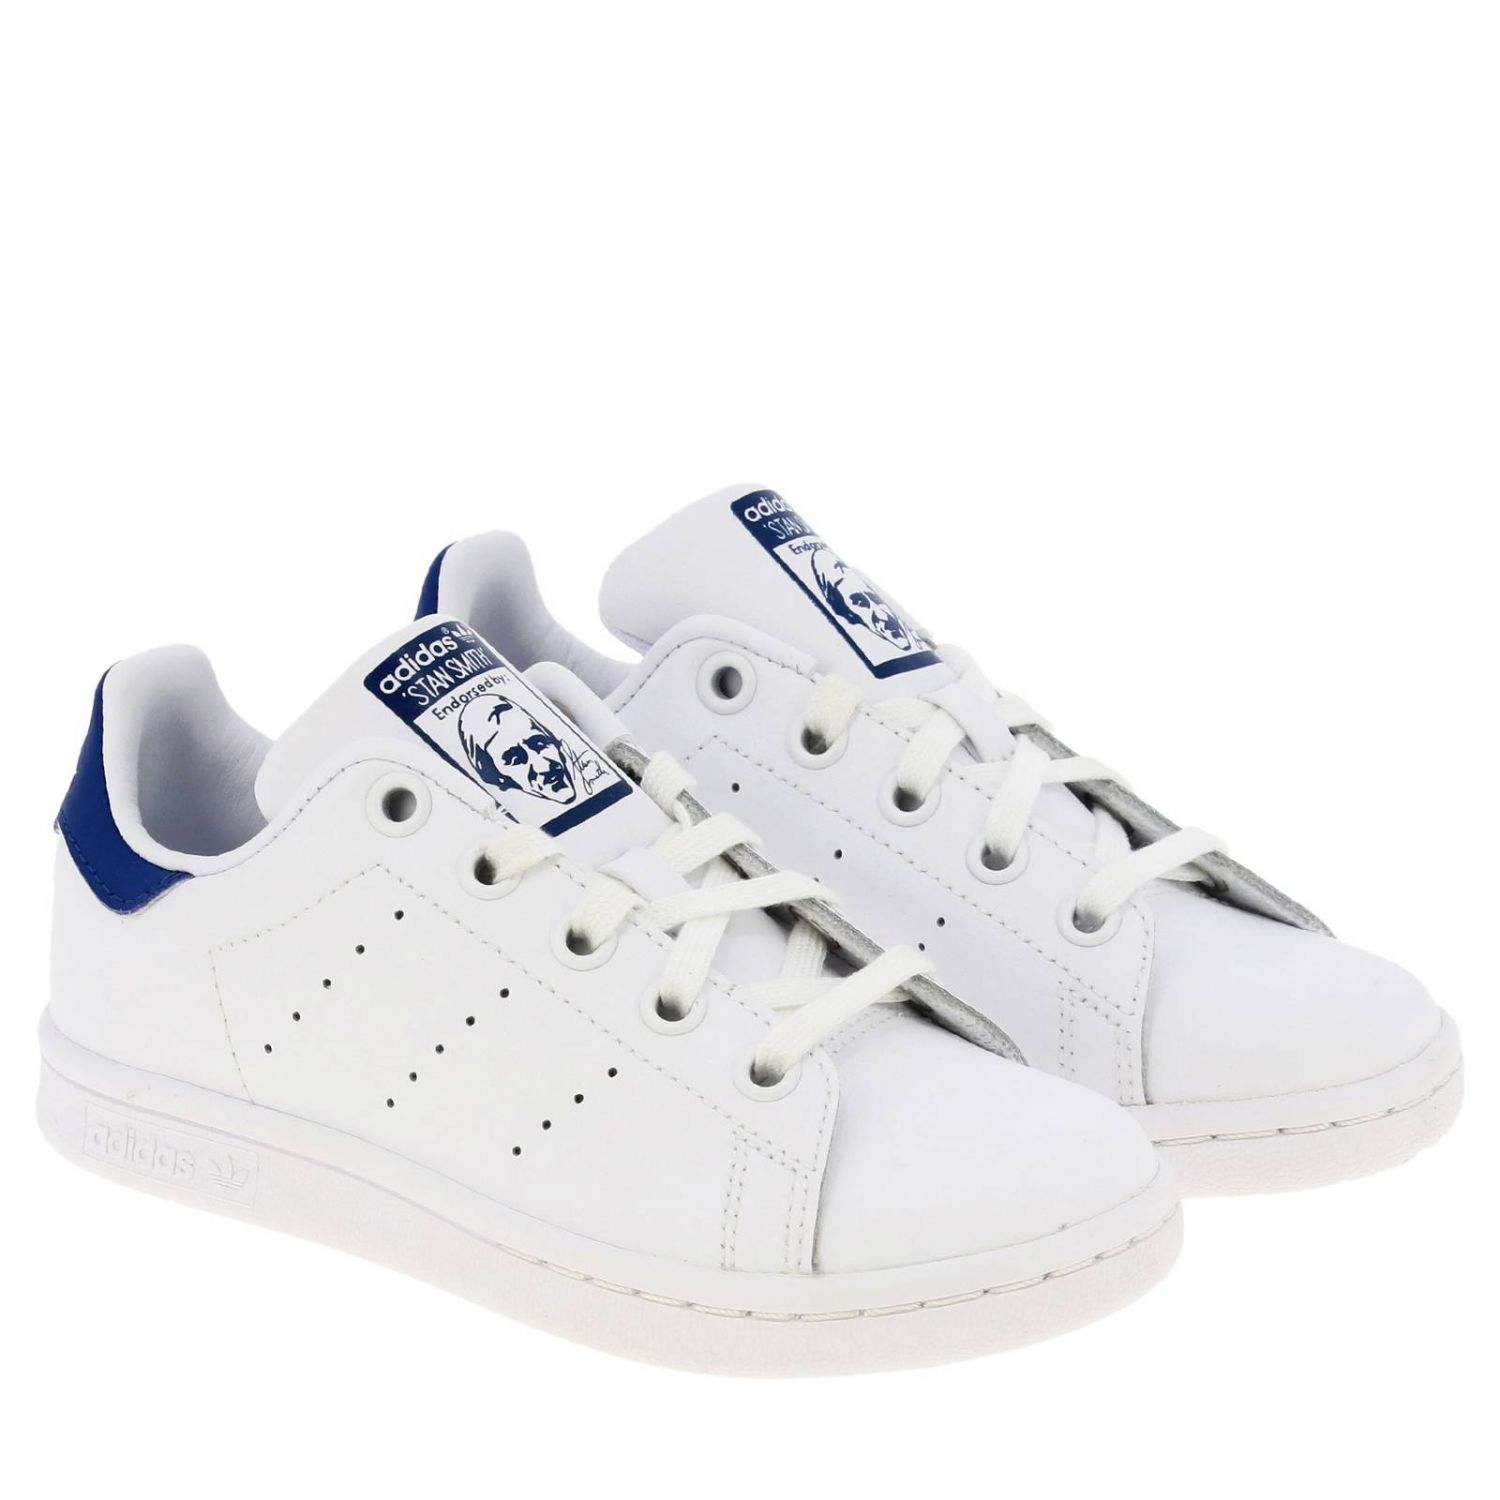 Shoes Adidas Originals: Stan Smith C Adidas Originals Sneakers in leather with contrasting heel white 2